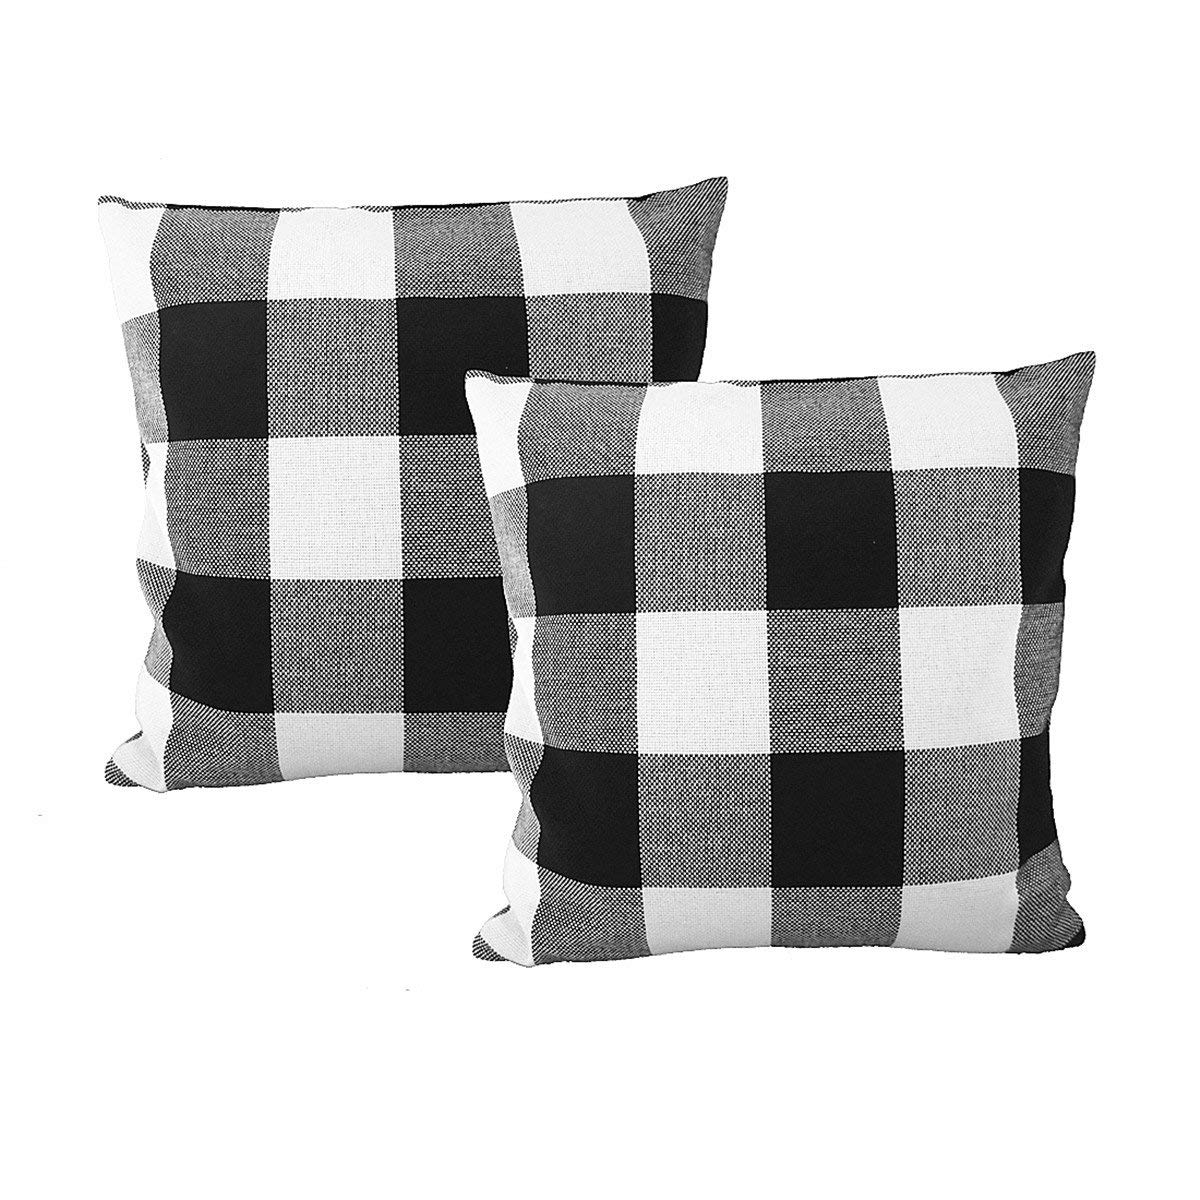 Farmhouse Vibes | Apartment Decor | Tartan Black and White Plaid Throw Pillows